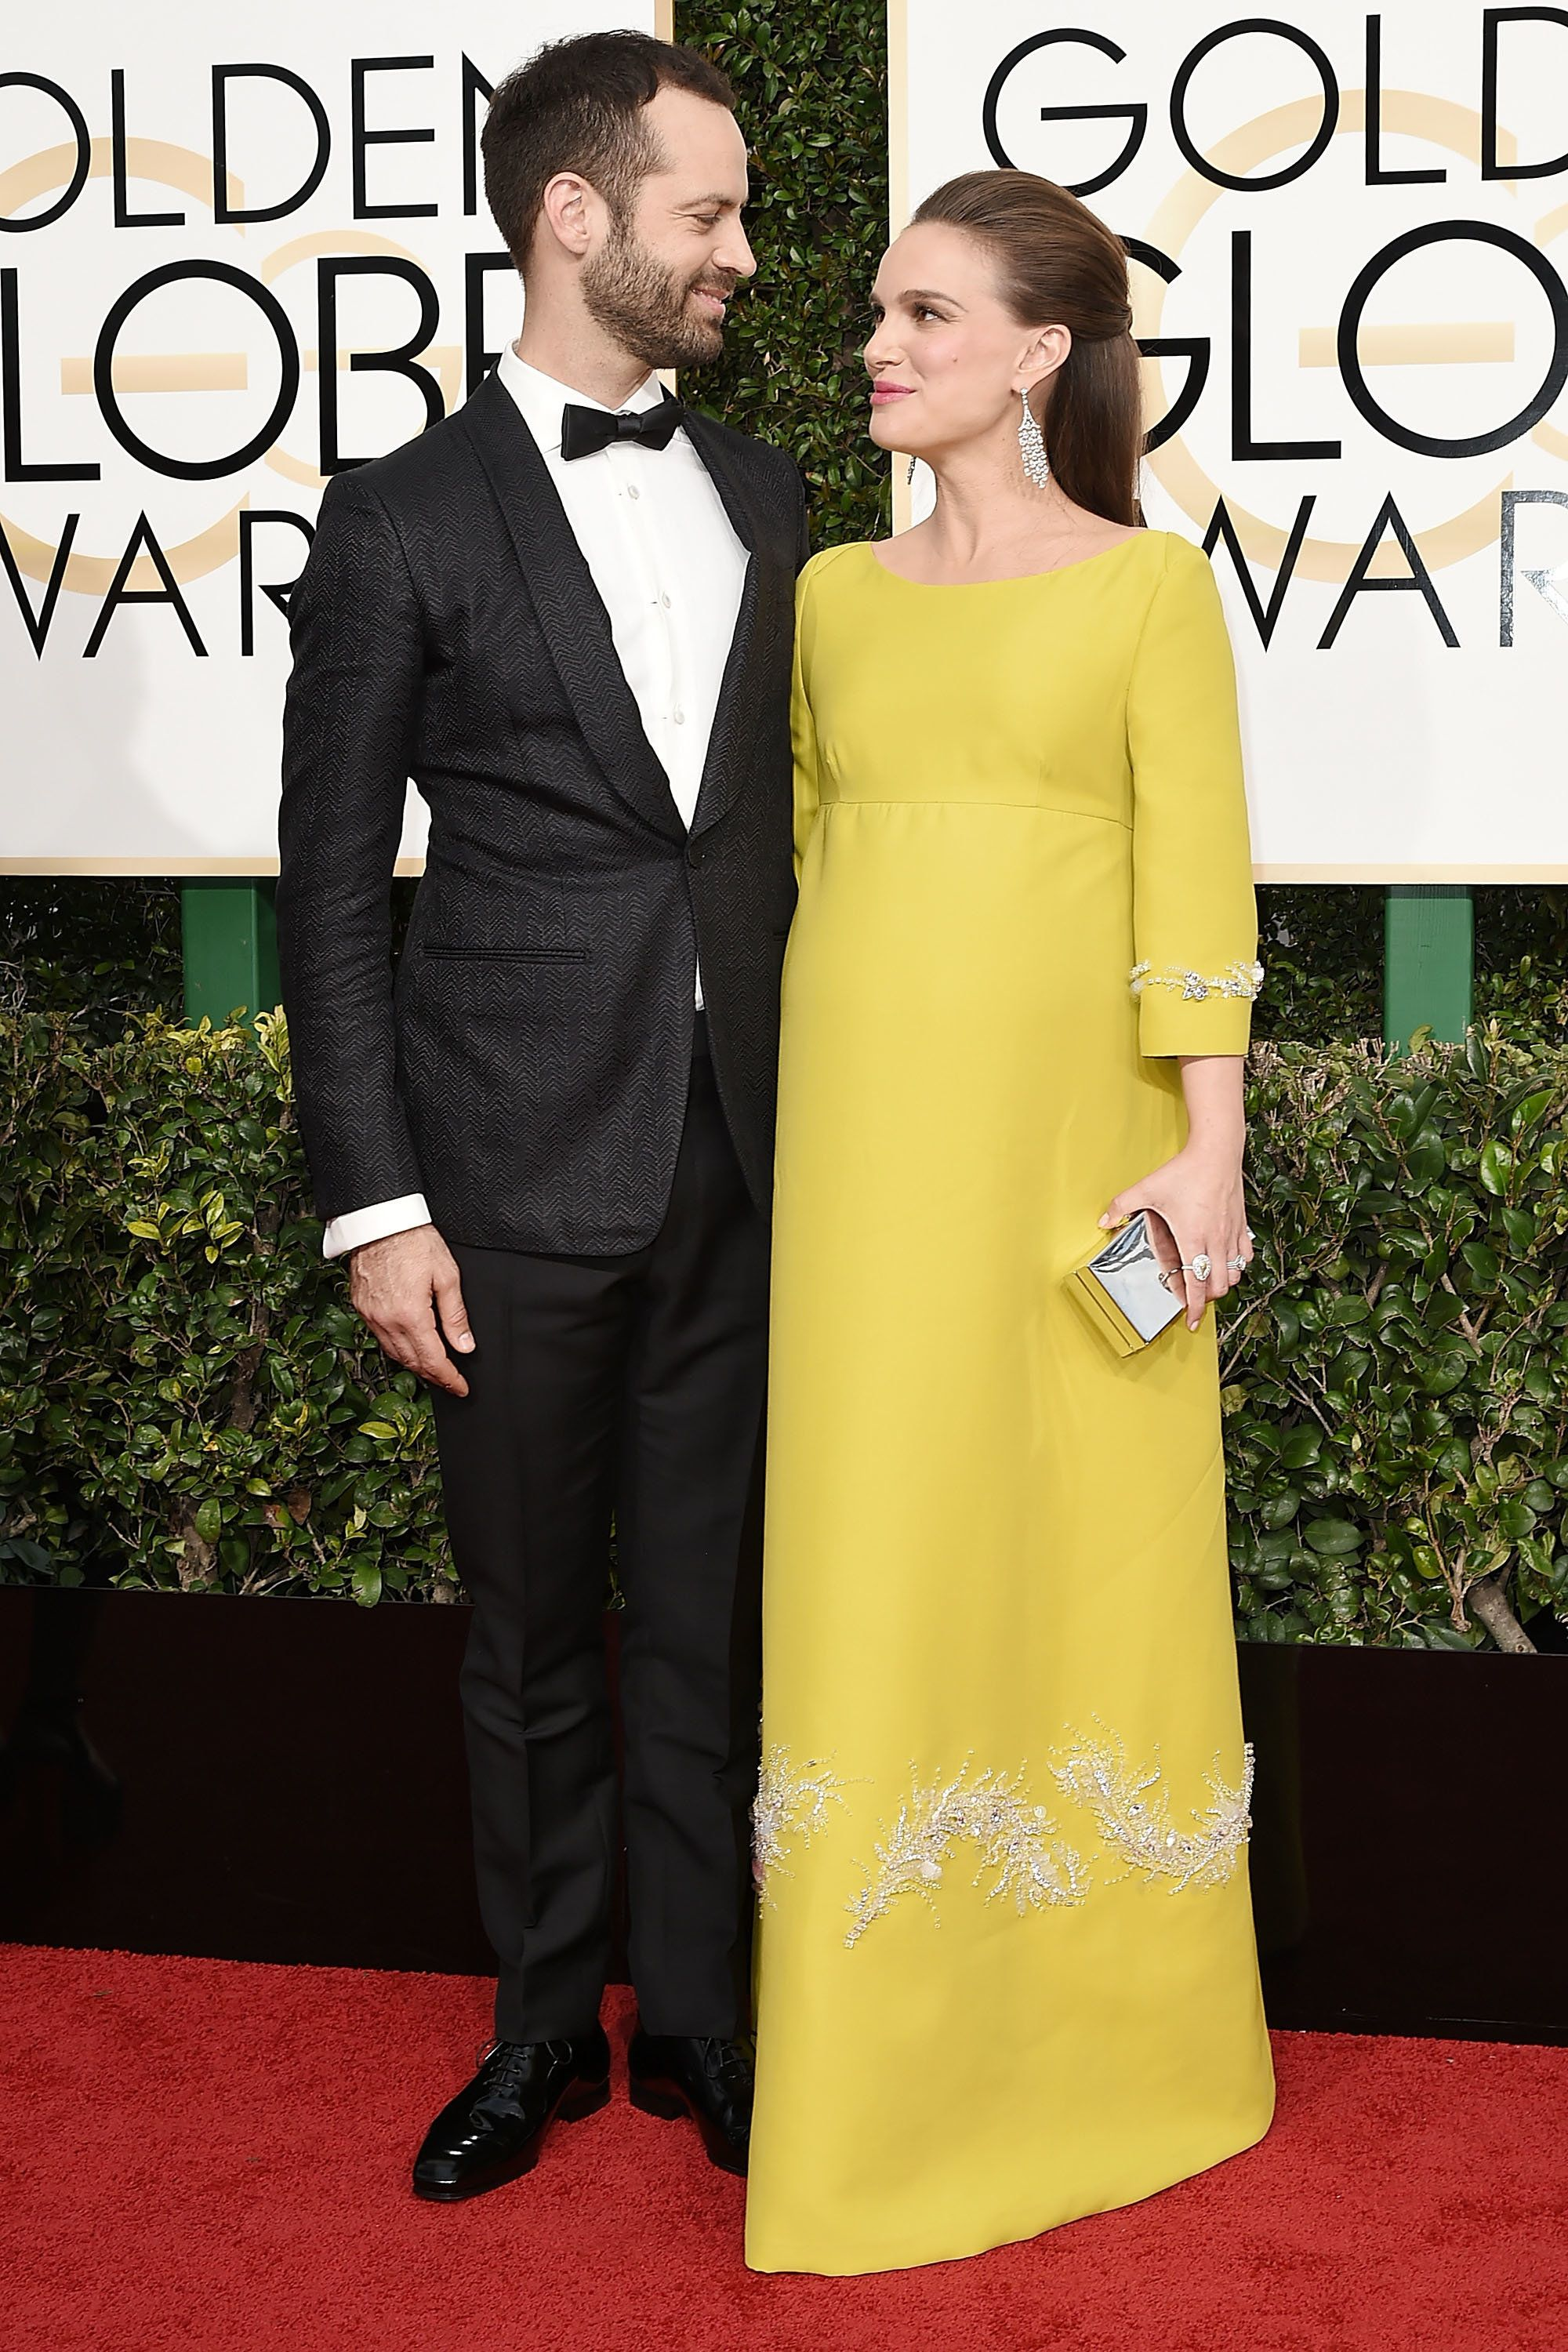 BEVERLY HILLS, CA - JANUARY 08:  Benjamin Millepied and Natalie Portman attend the 74th Annual Golden Globe Awards - Arrivals at The Beverly Hilton Hotel on January 8, 2017 in Beverly Hills, California.  (Photo by David Crotty/Patrick McMullan via Getty Images)